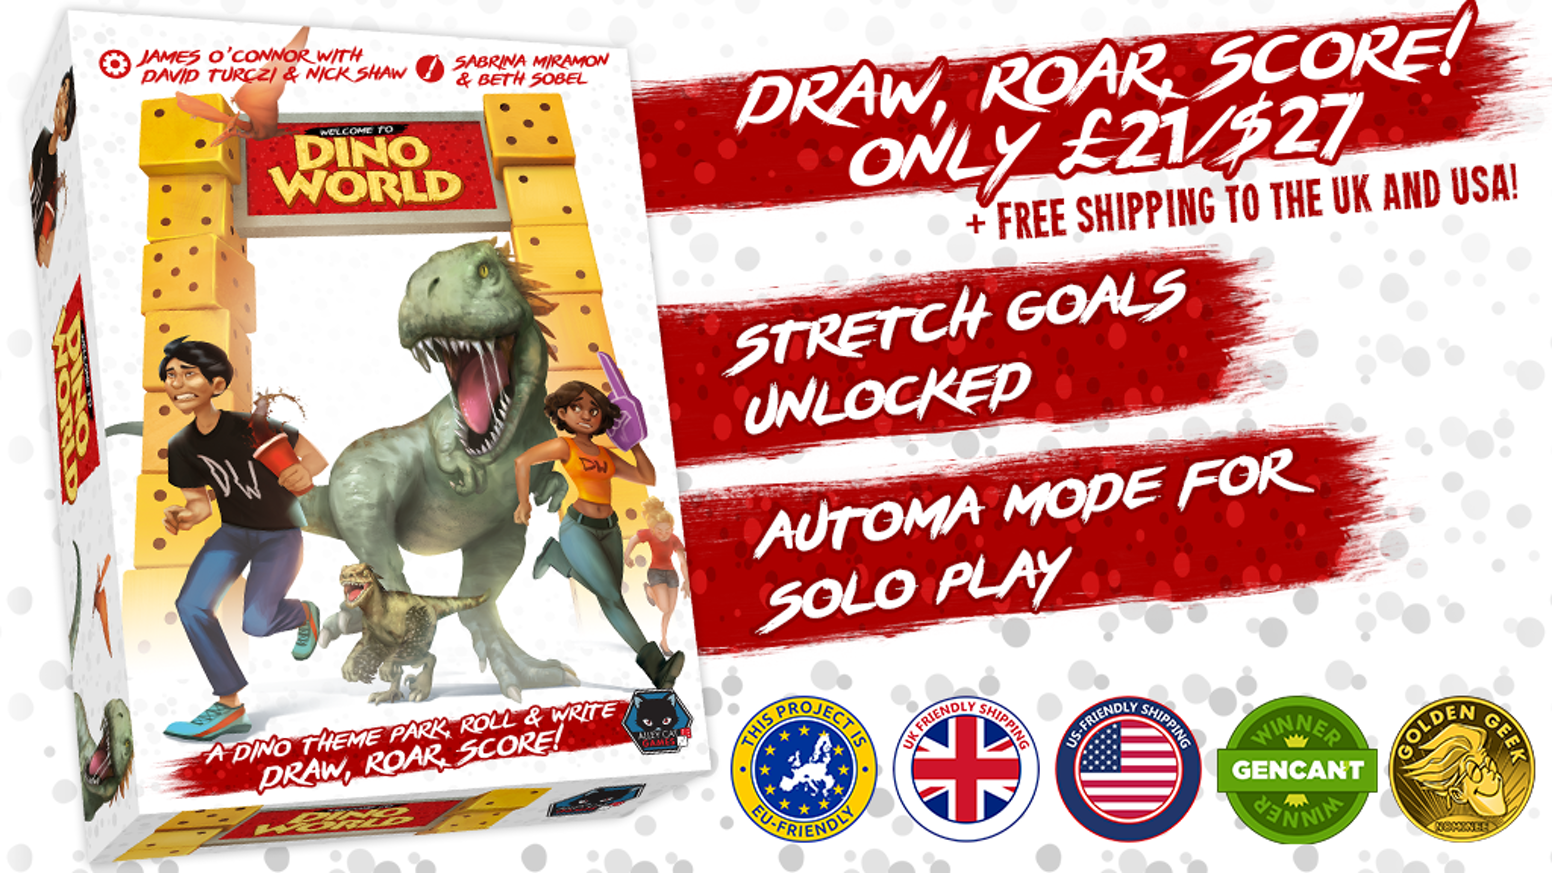 Draw, Roar, Score! Take control of competing dinosaur theme parks in this medium weight roll and write game.